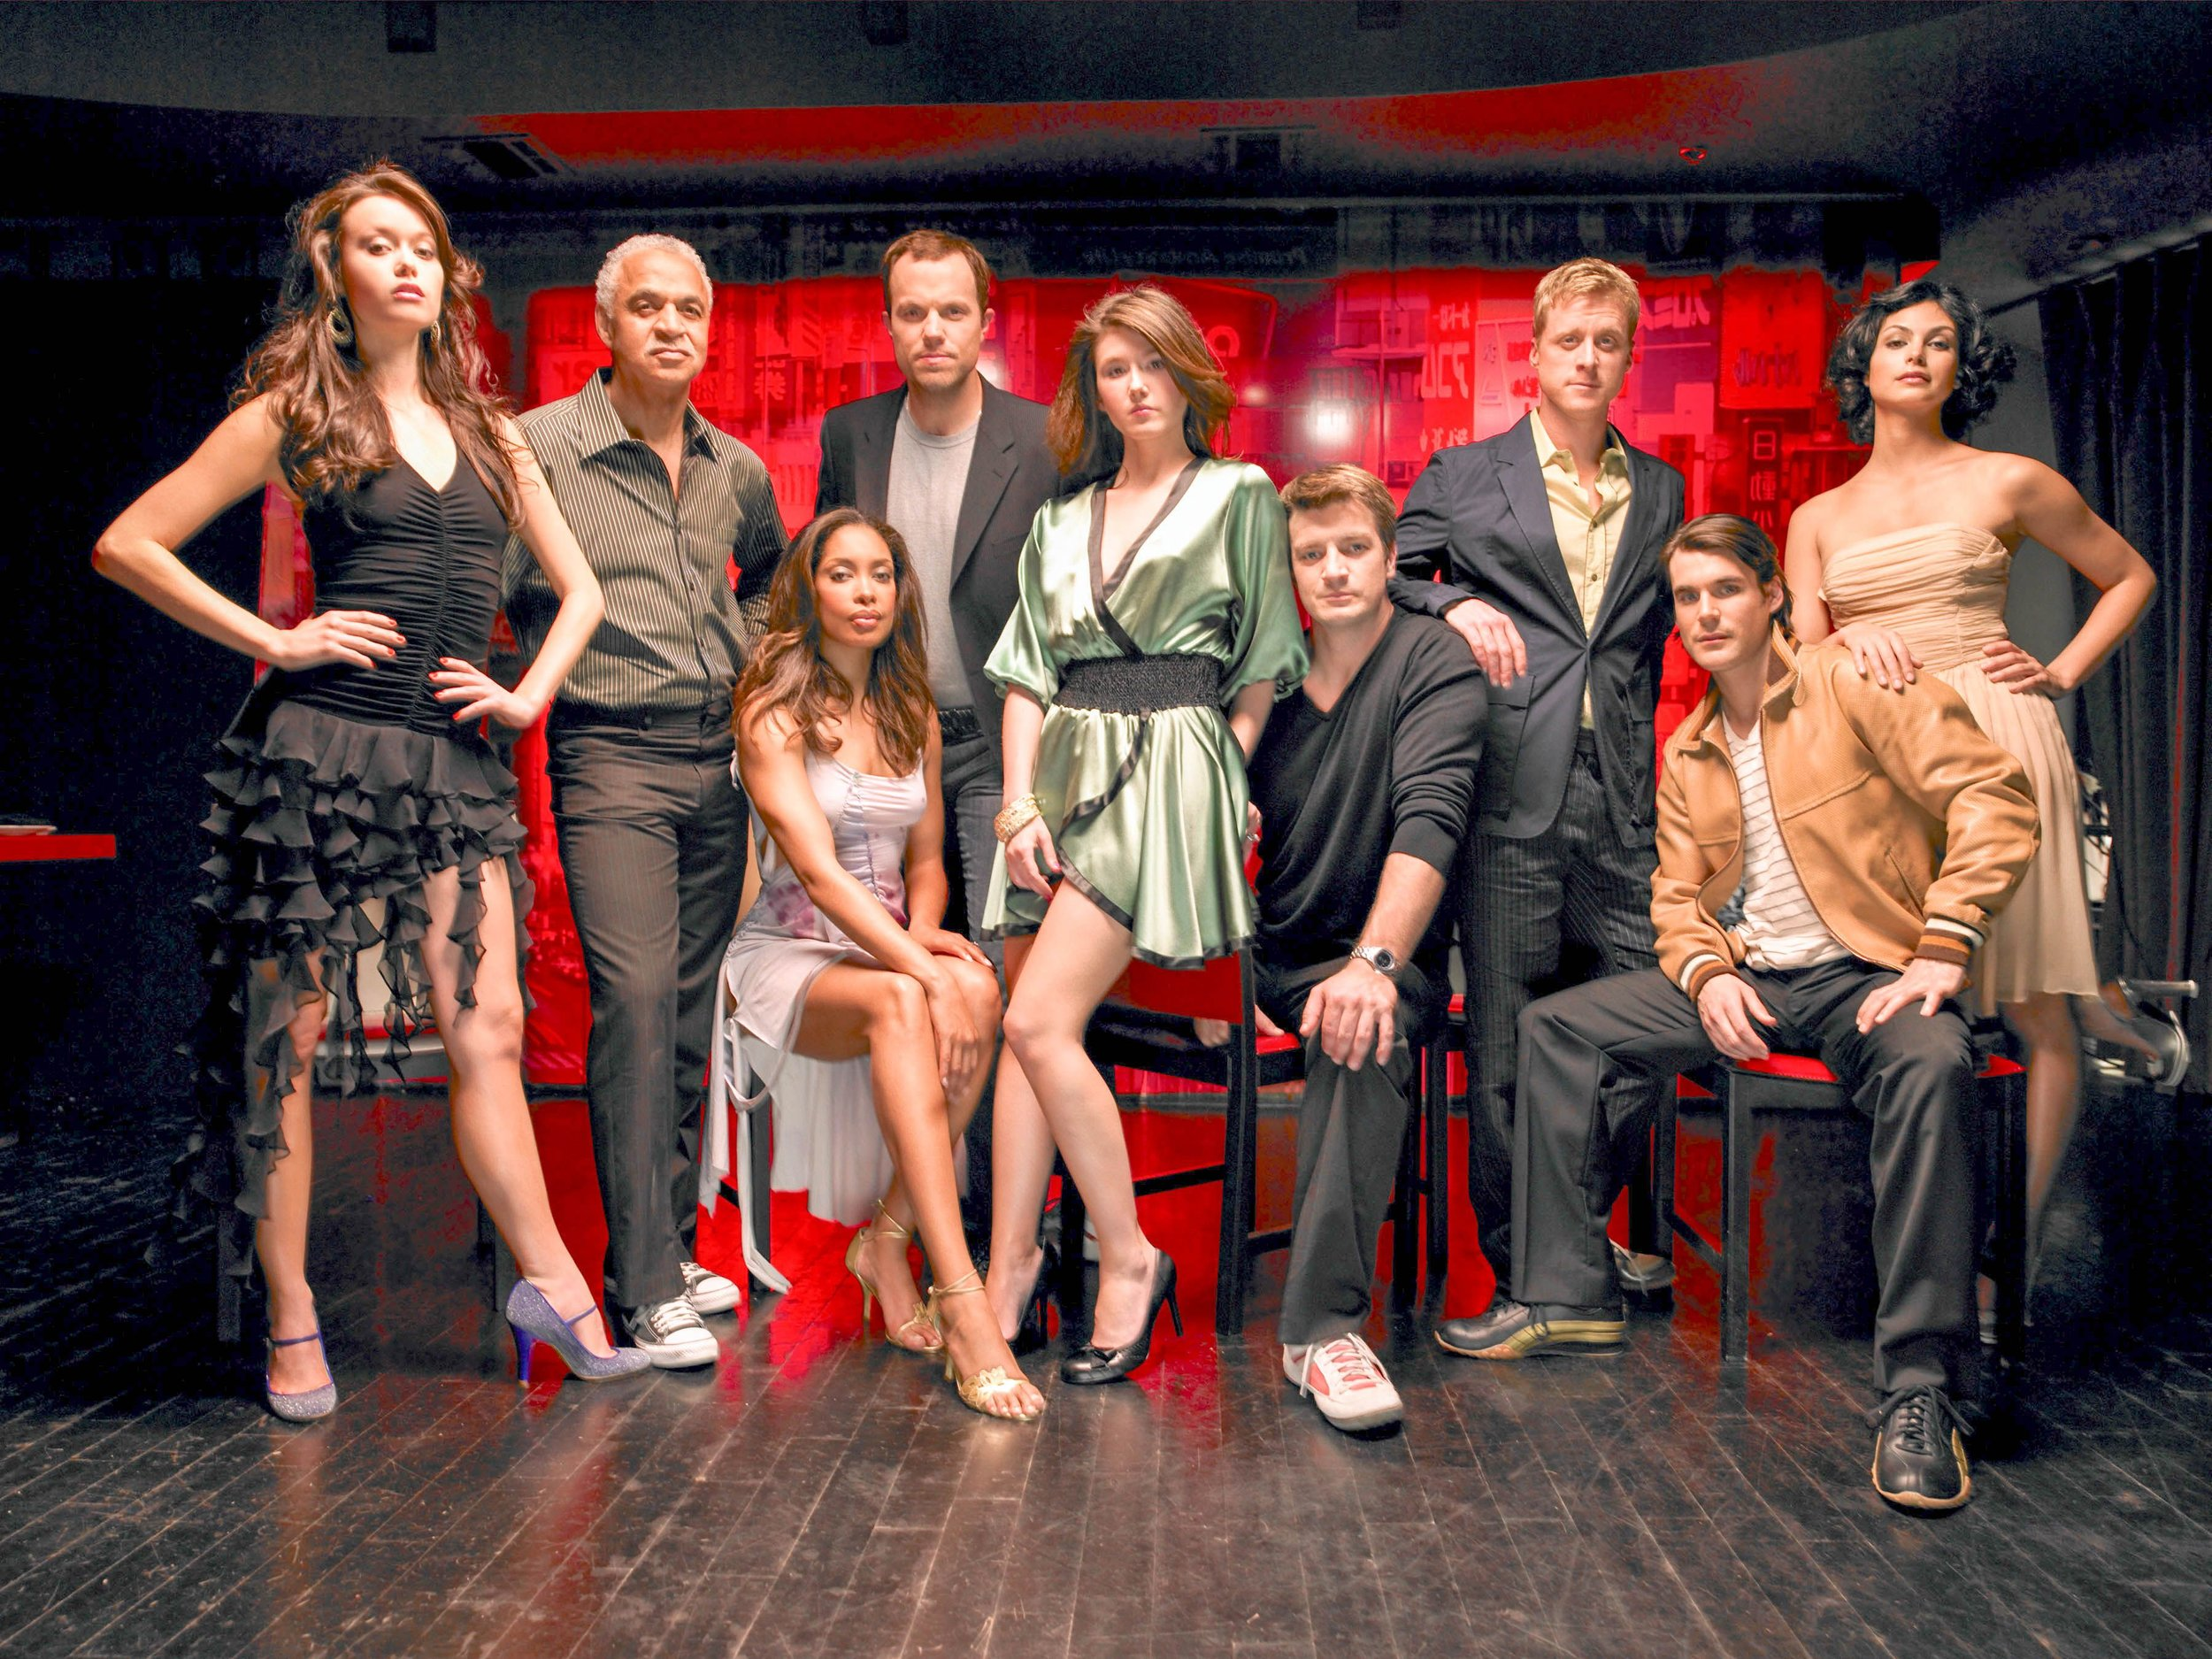 From Left to Right: Summer, Ron, Gina, Adam, Jewel, Nathan, Alan, Sean, and Morena. Our talented cast.